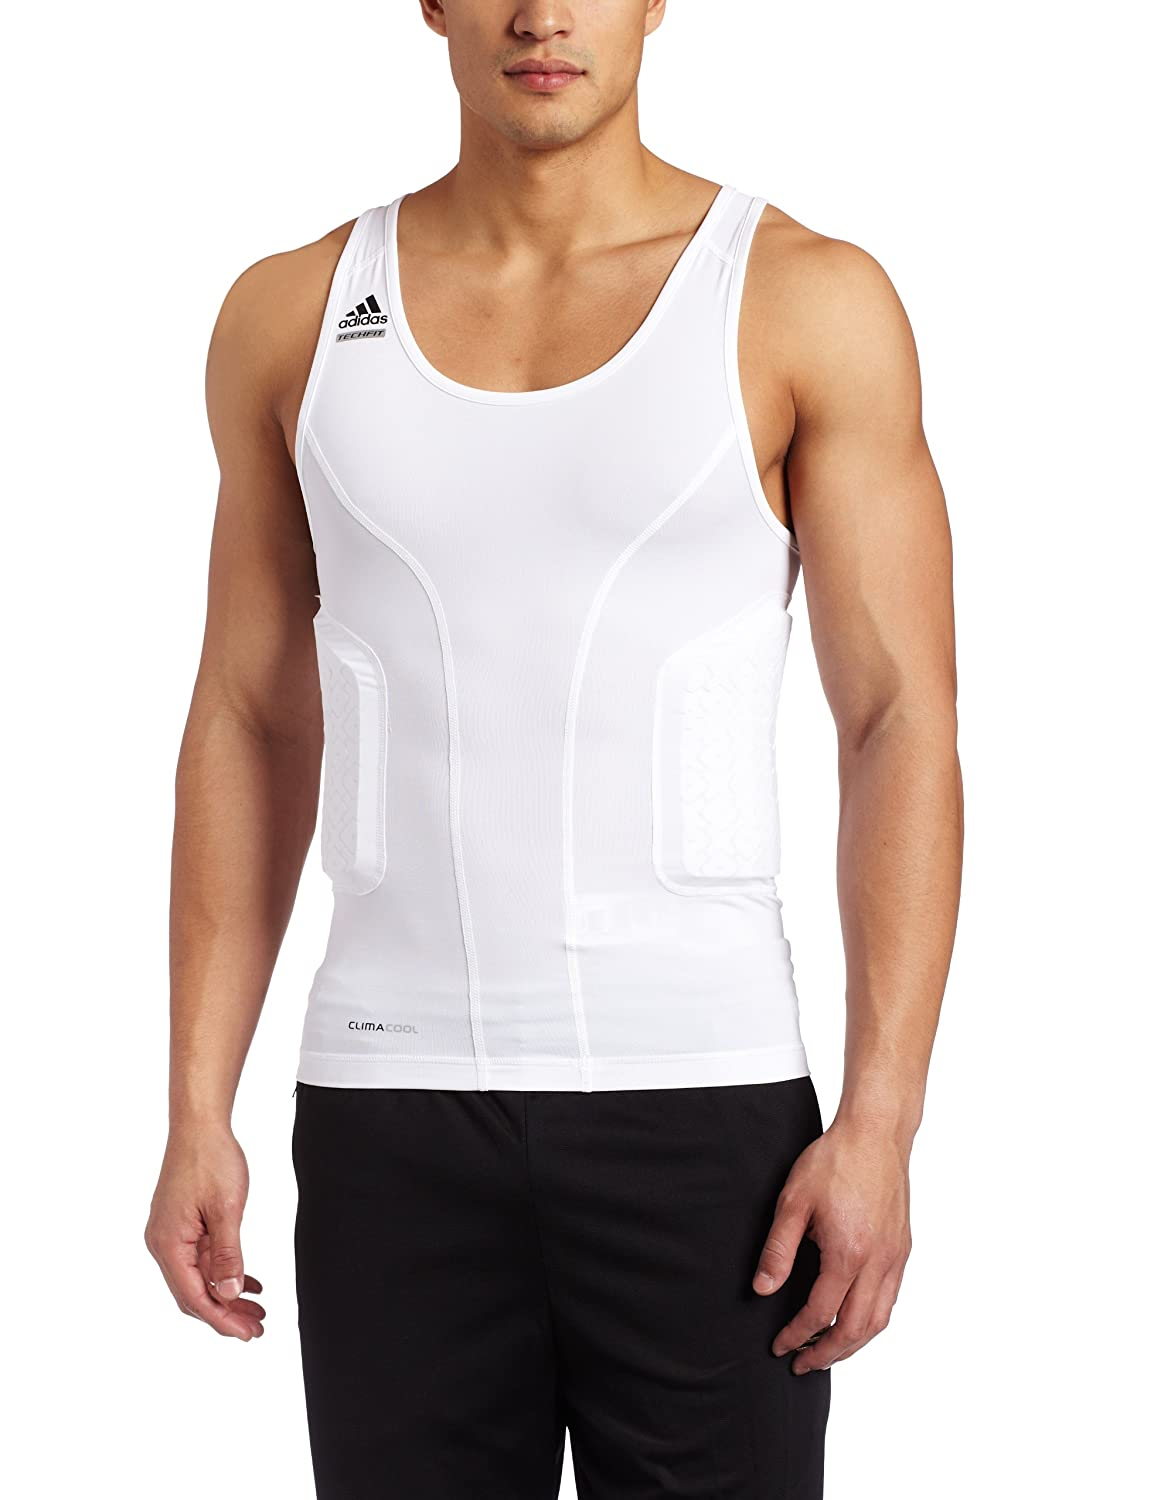 24c7f53f80 Amazon.com: adidas Men's Techfit Padded Compression Tank (White, X-Large):  Sports & Outdoors